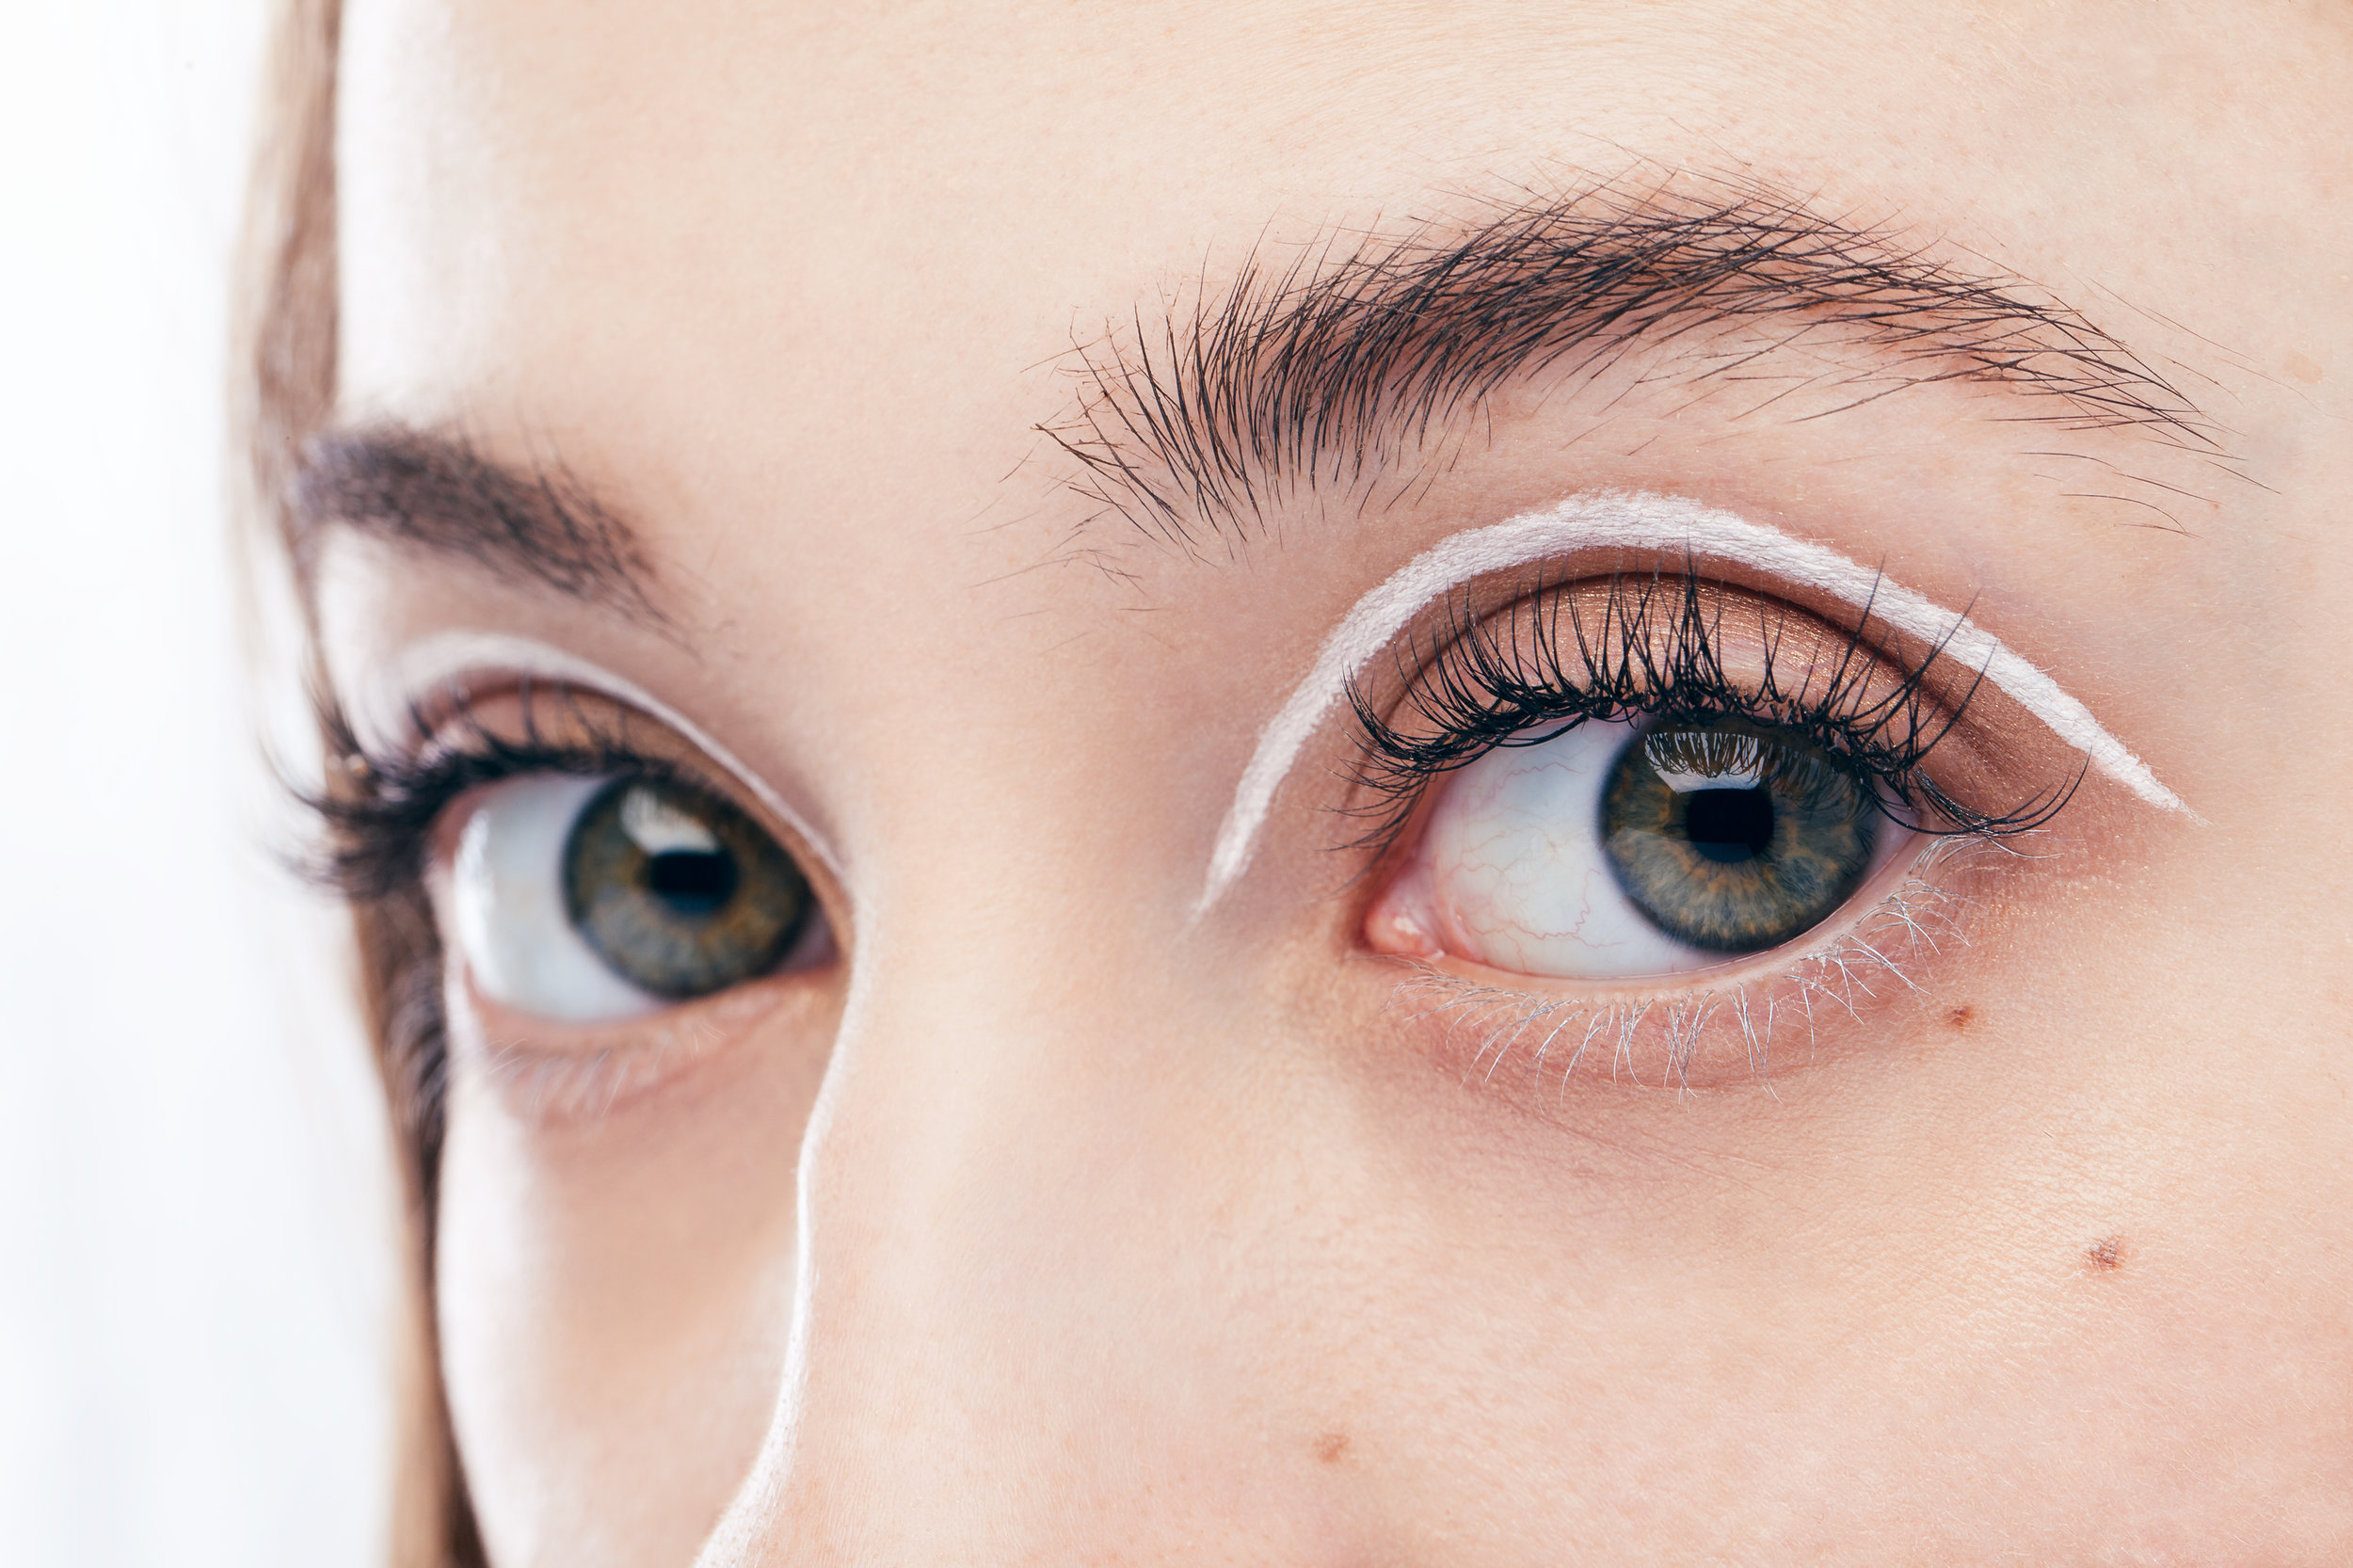 abd4e3be49f IRIS+WEST LASH•CO - The best eyelash extensions in Los Angeles